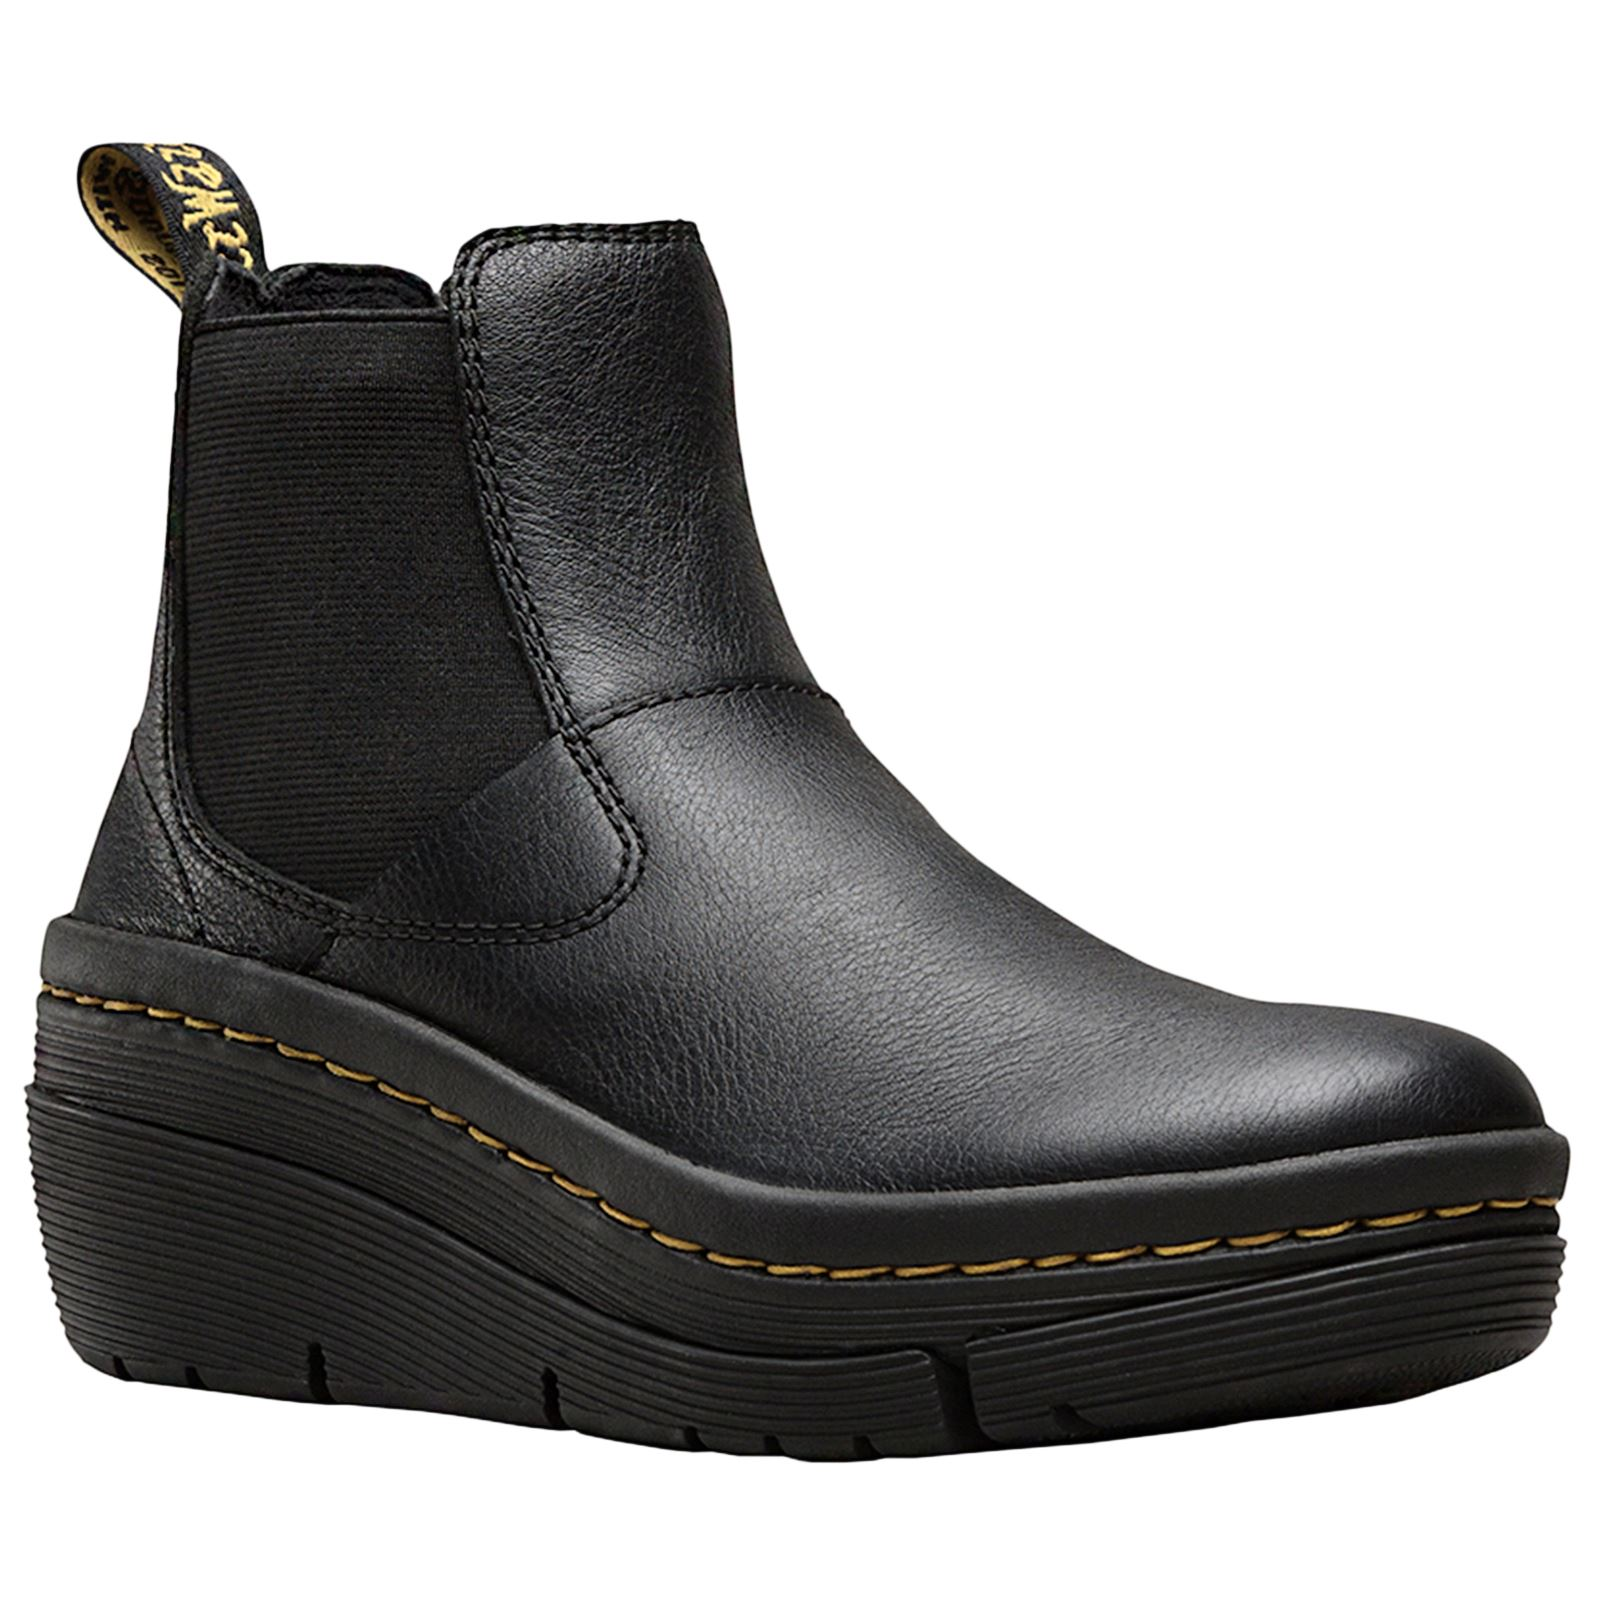 pretty nice 2bd62 9c822 Details zu Dr.Martens Brienna Black Womens Virginia Leather Wedge Chelsea  Boots